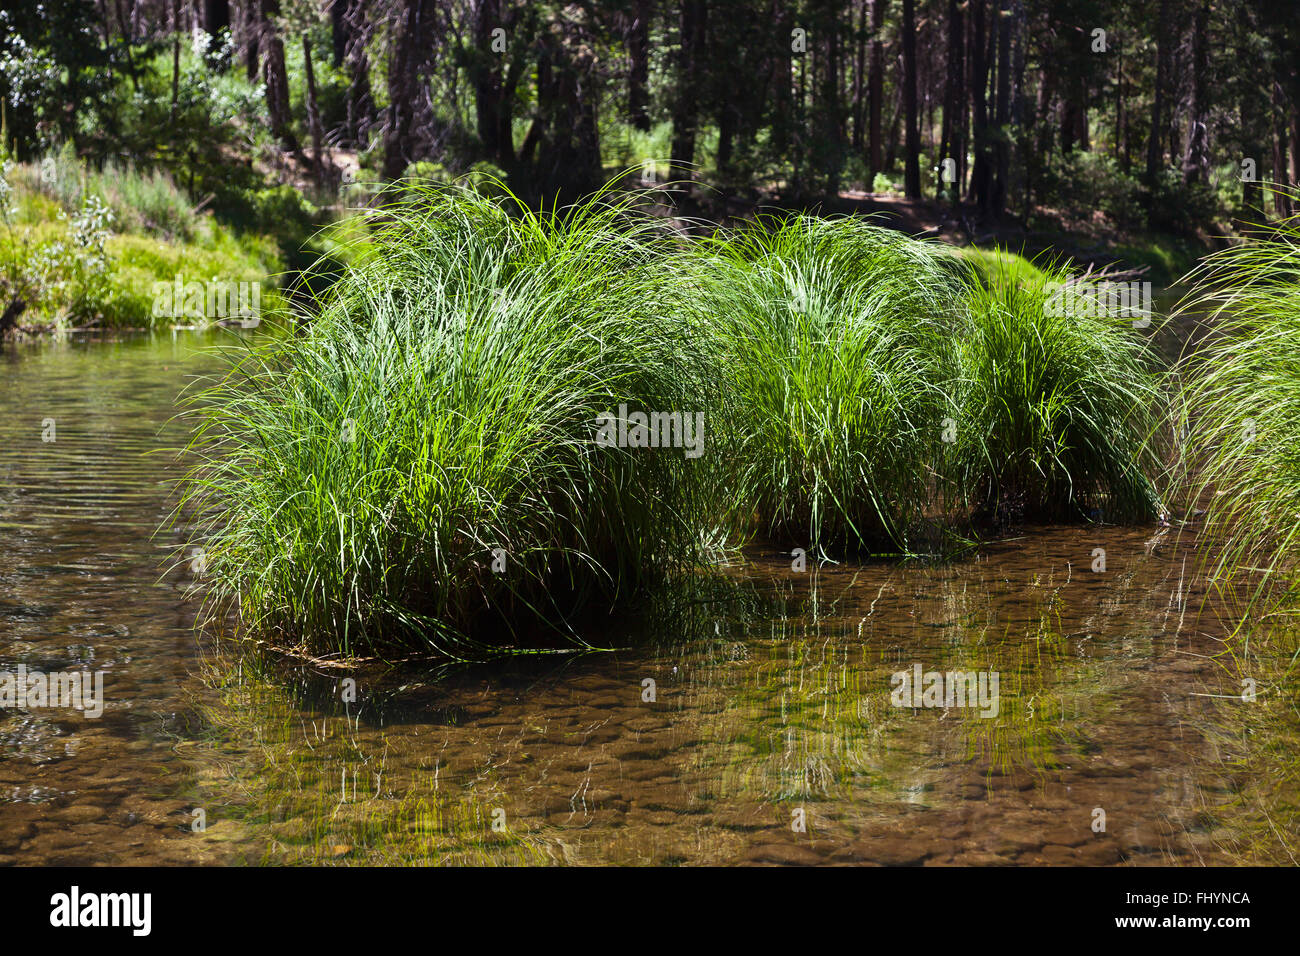 NATIVE GRASSES flourish in the MERCED RIVER meandering through YOSEMITE VALLEY in spring - CALIFORNIA - Stock Image